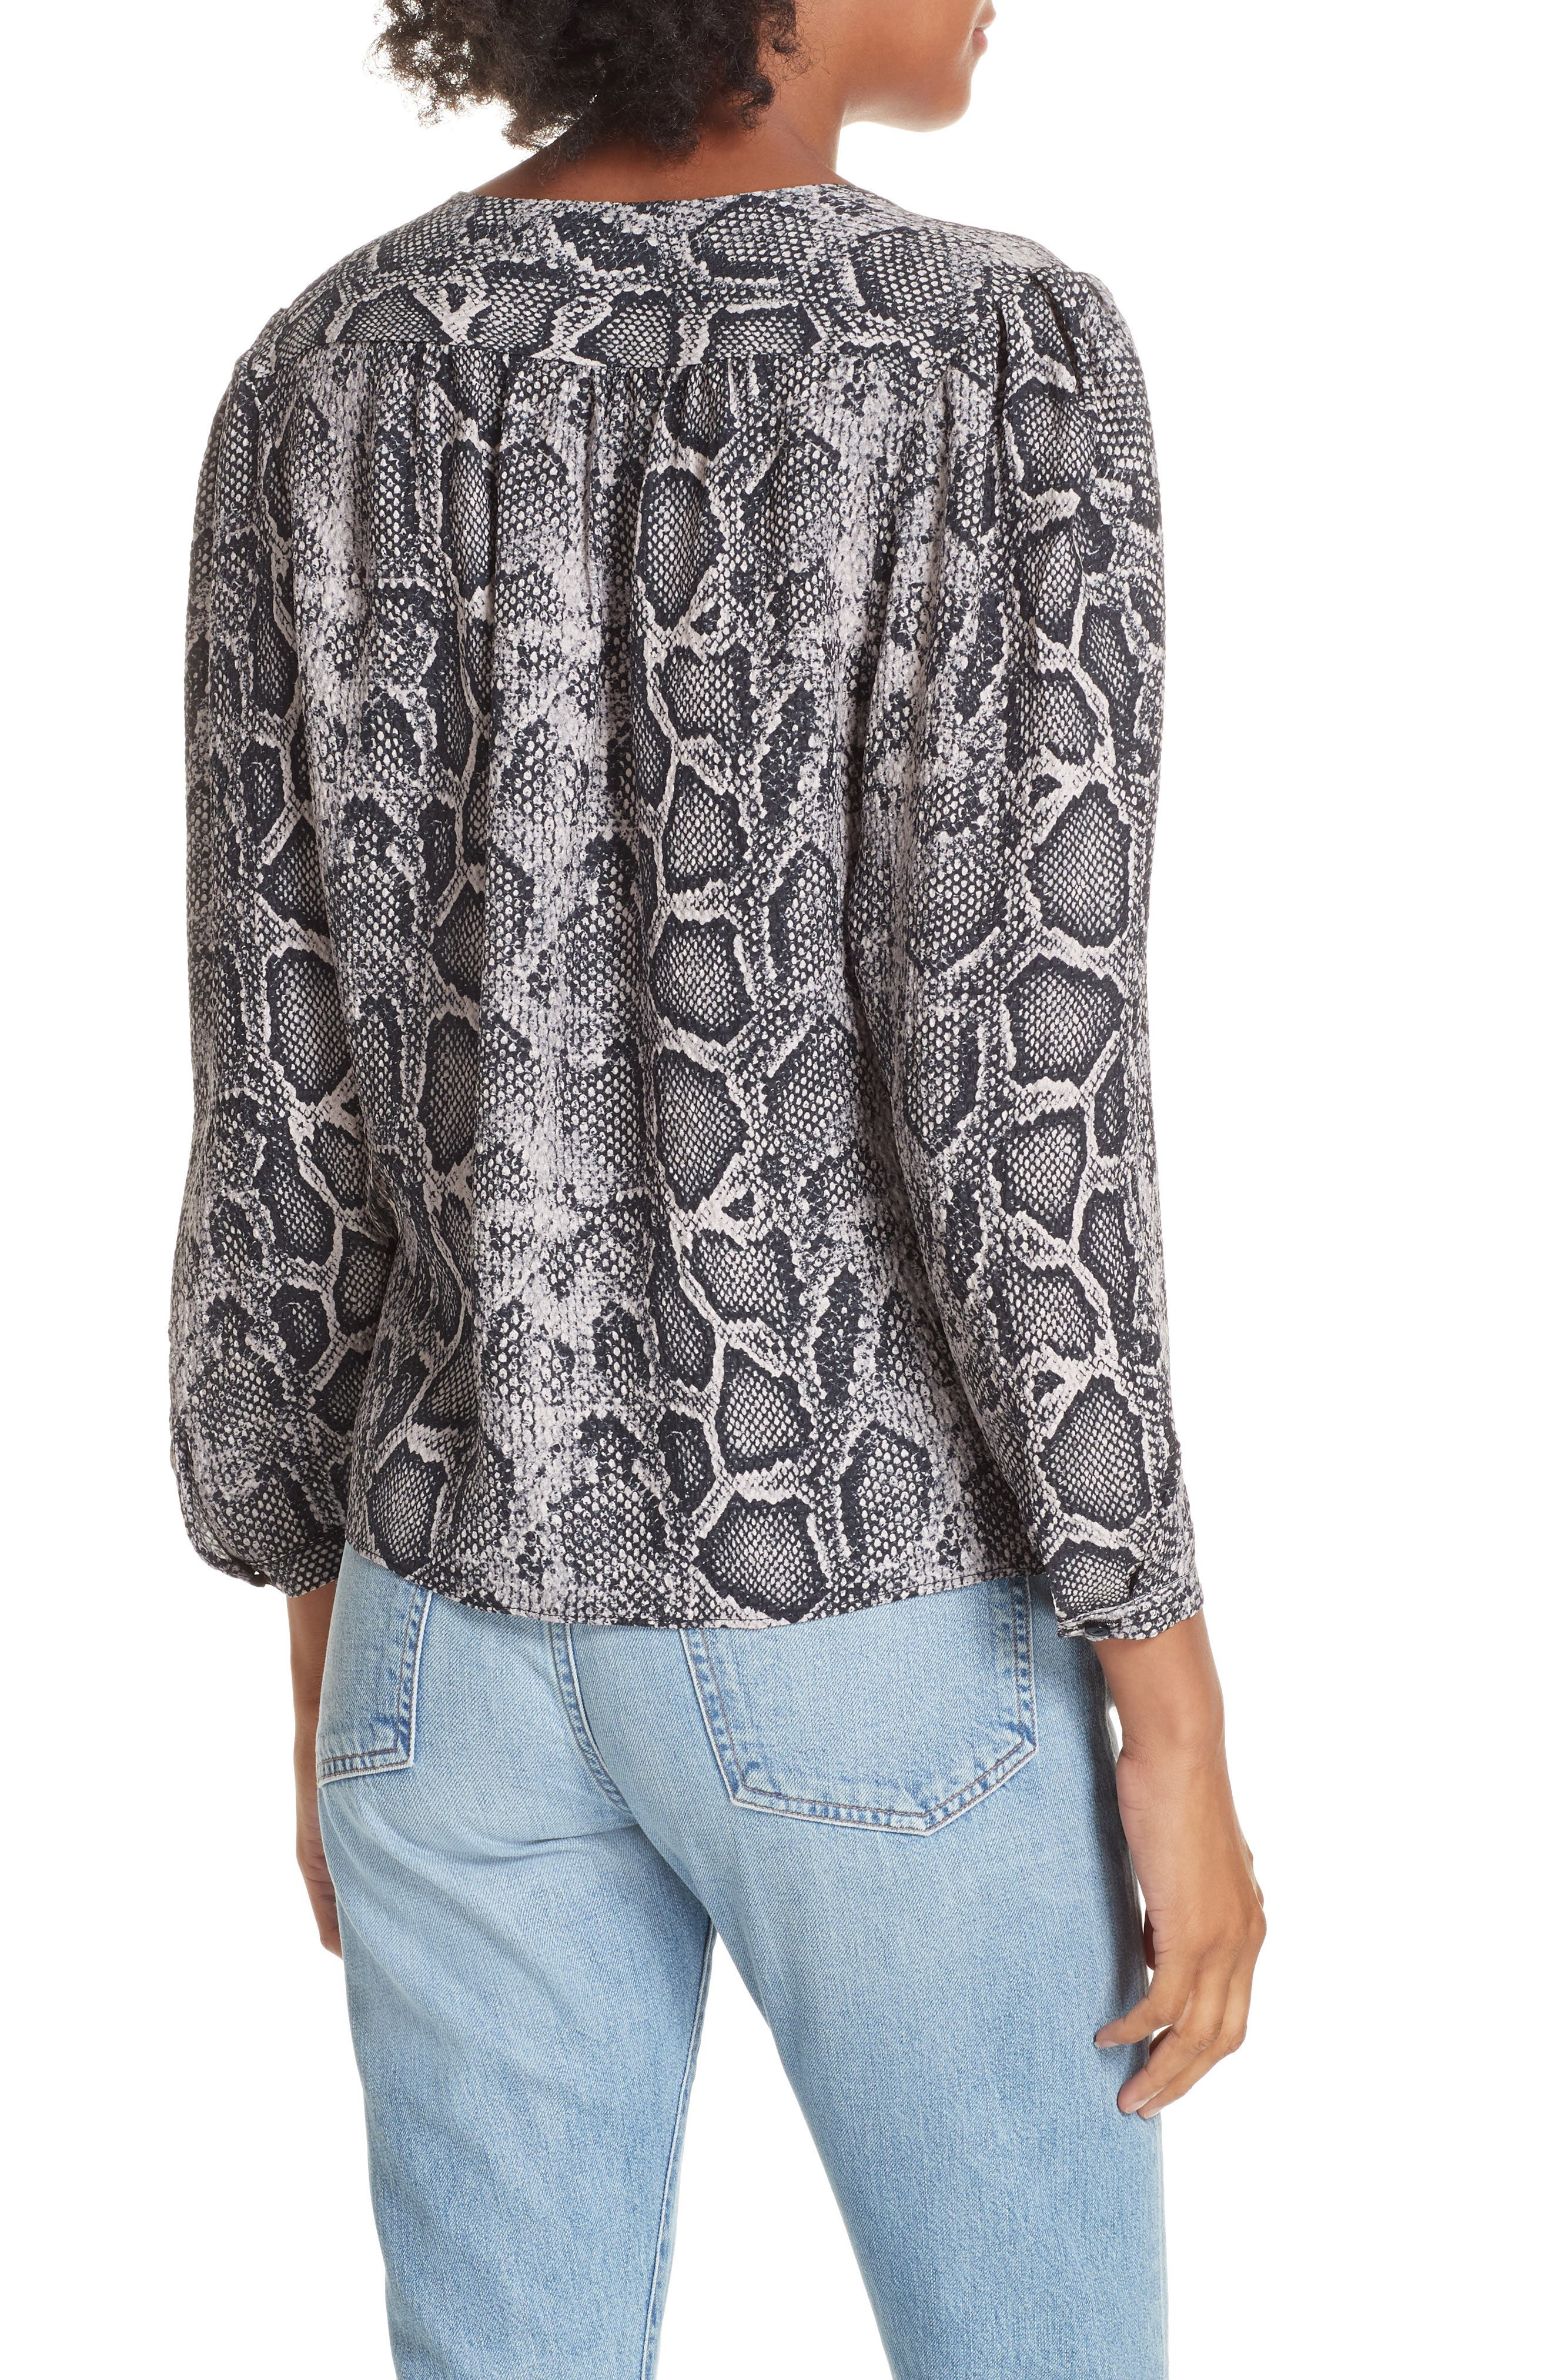 Snake Print Top,                             Alternate thumbnail 2, color,                             WASHED BLACK COMBO